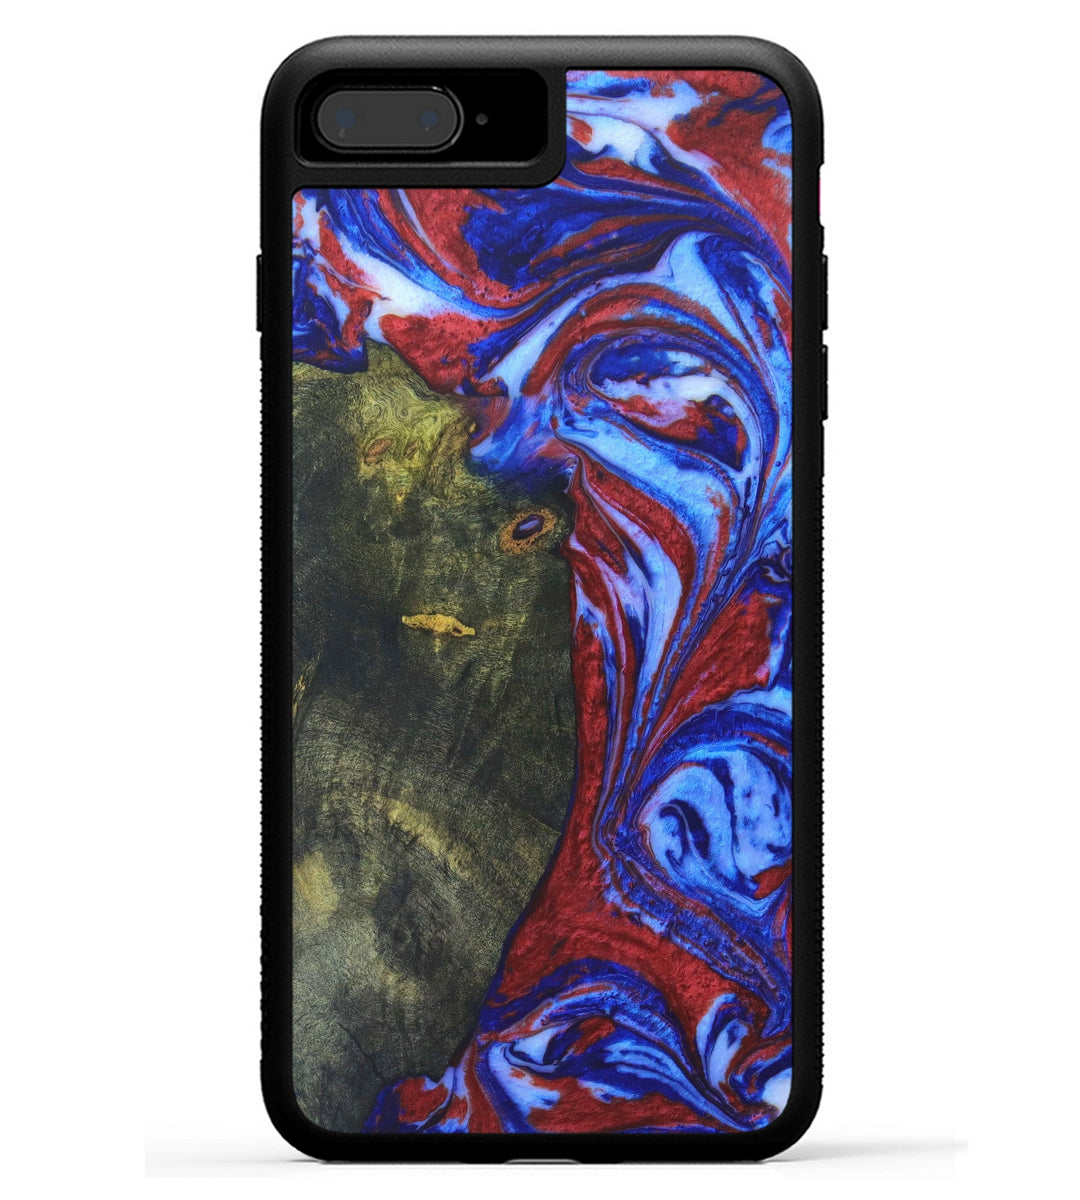 iPhone 8 Plus Wood+Resin Case - Junette (Blue & Red, 331713)